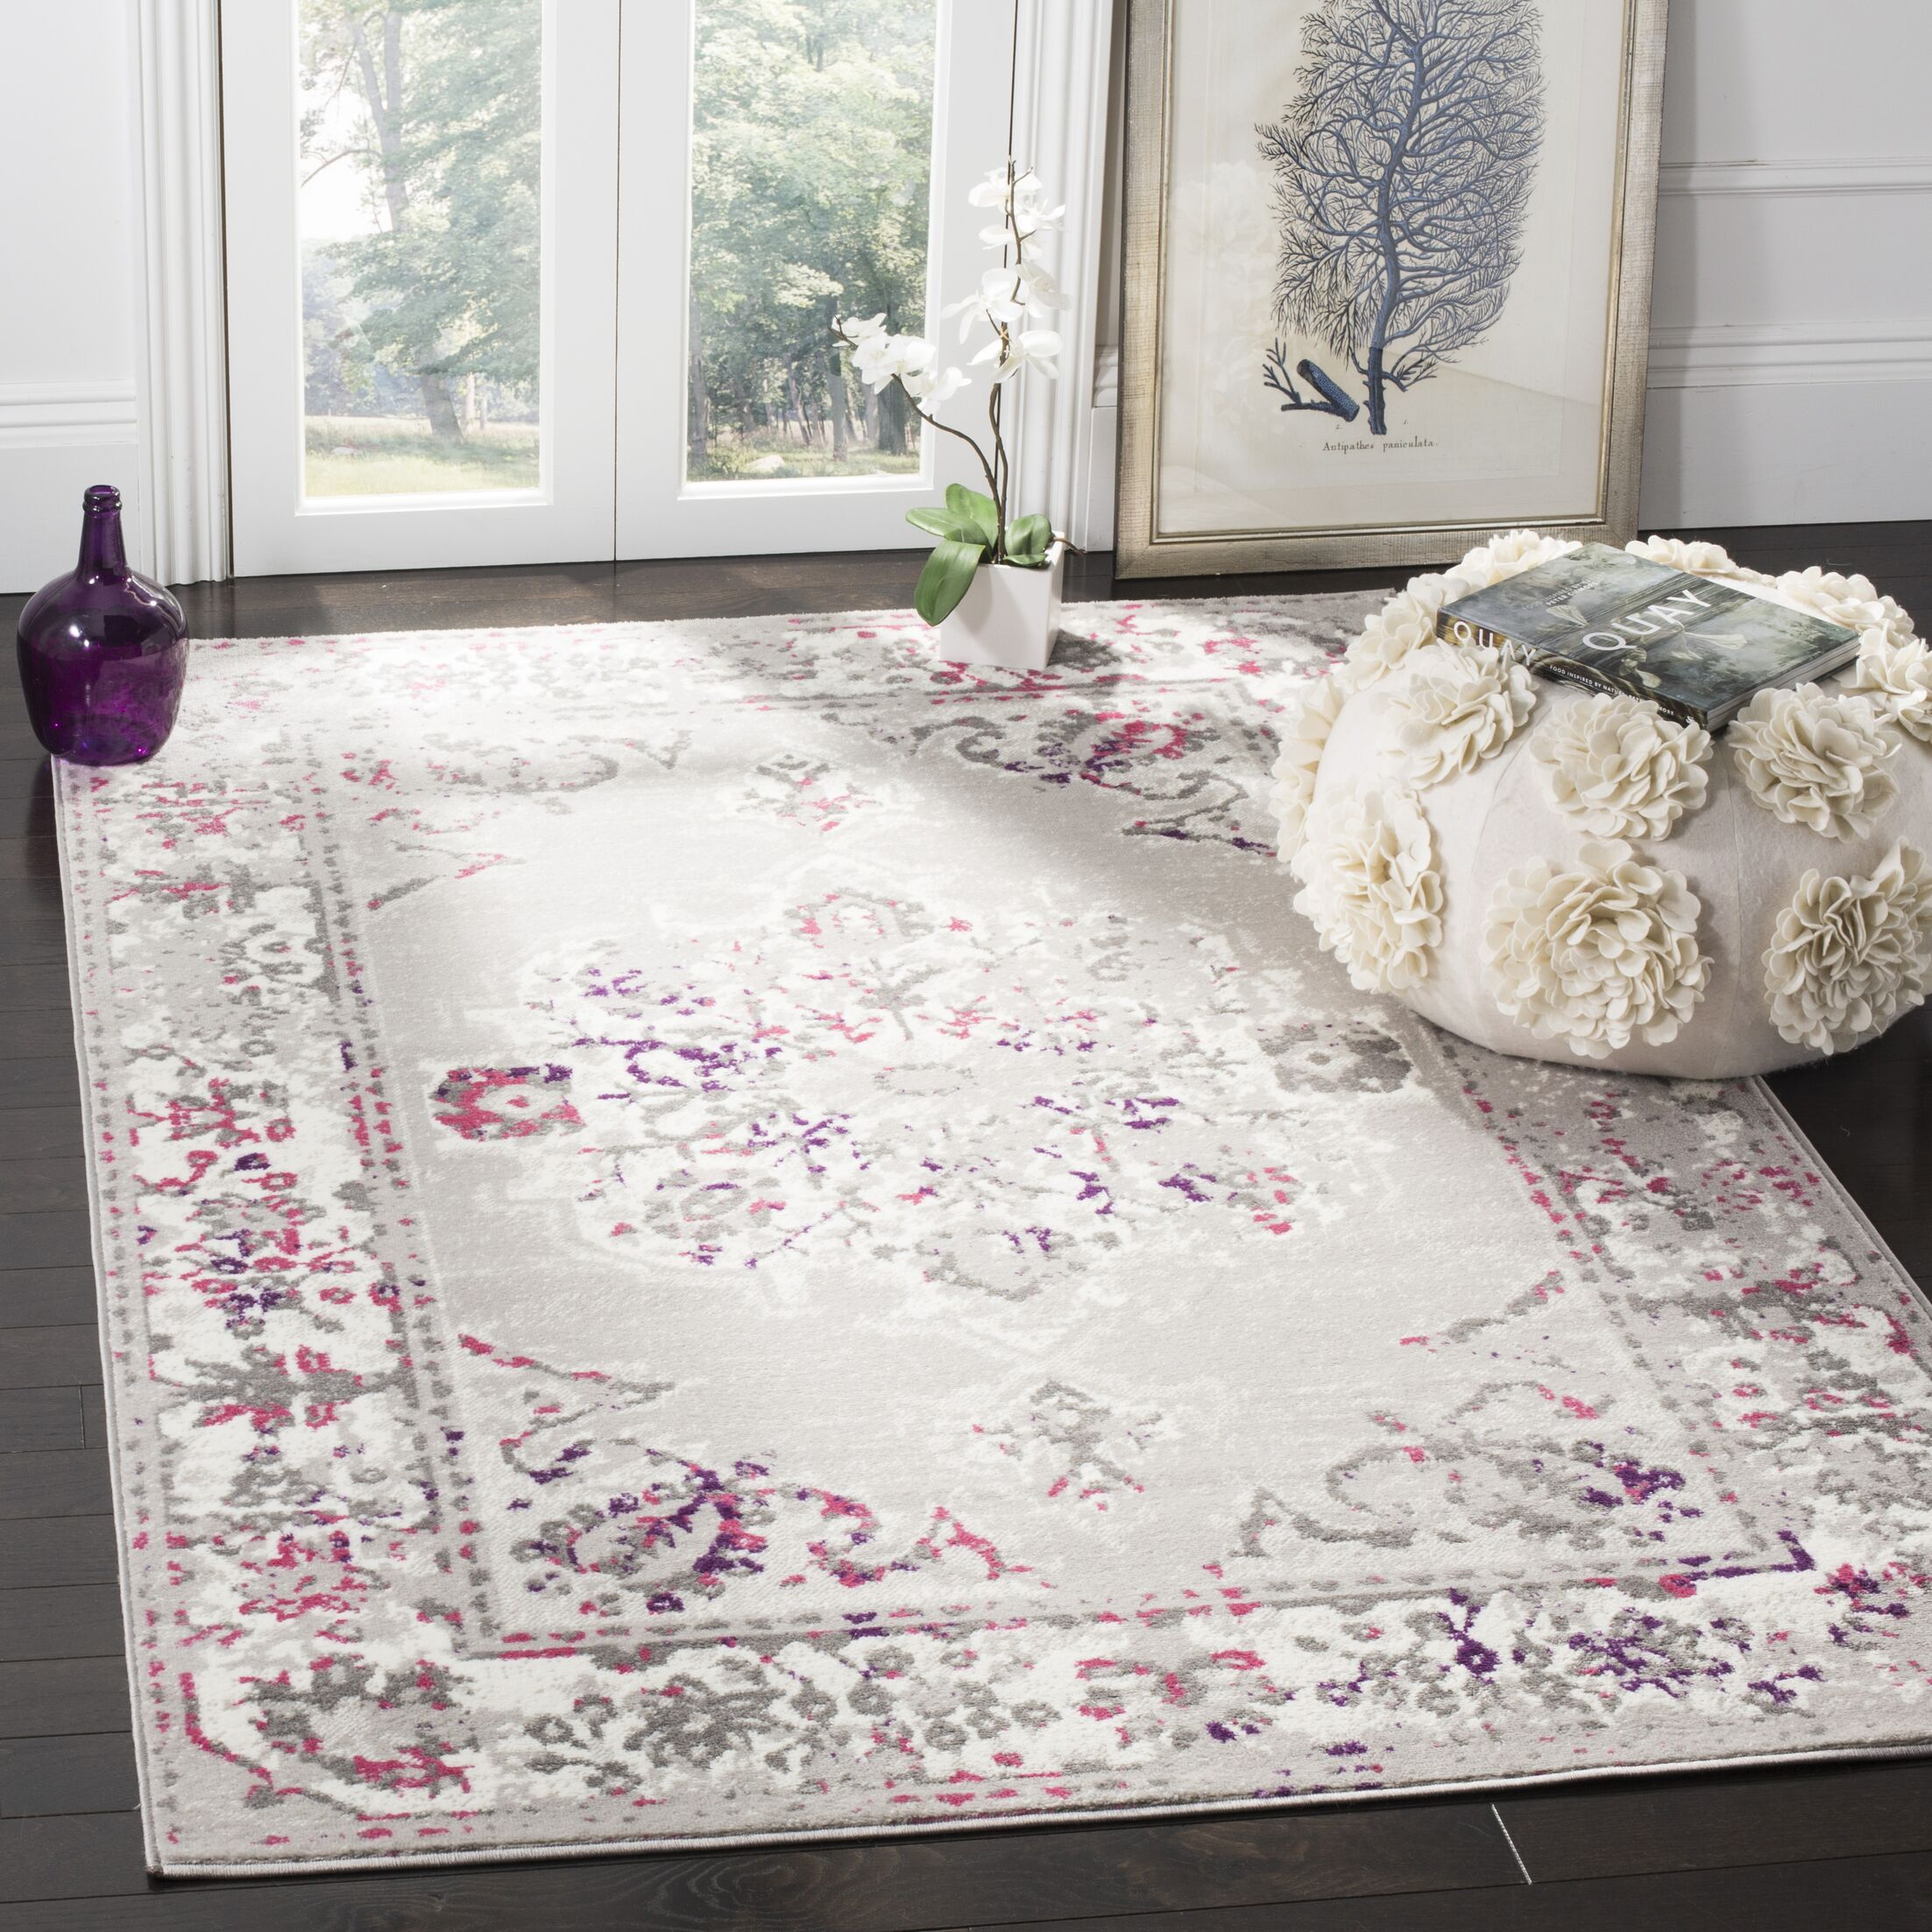 Doty Gray/Pink Area Rug Rug Size: Rectangle 6' x 9'